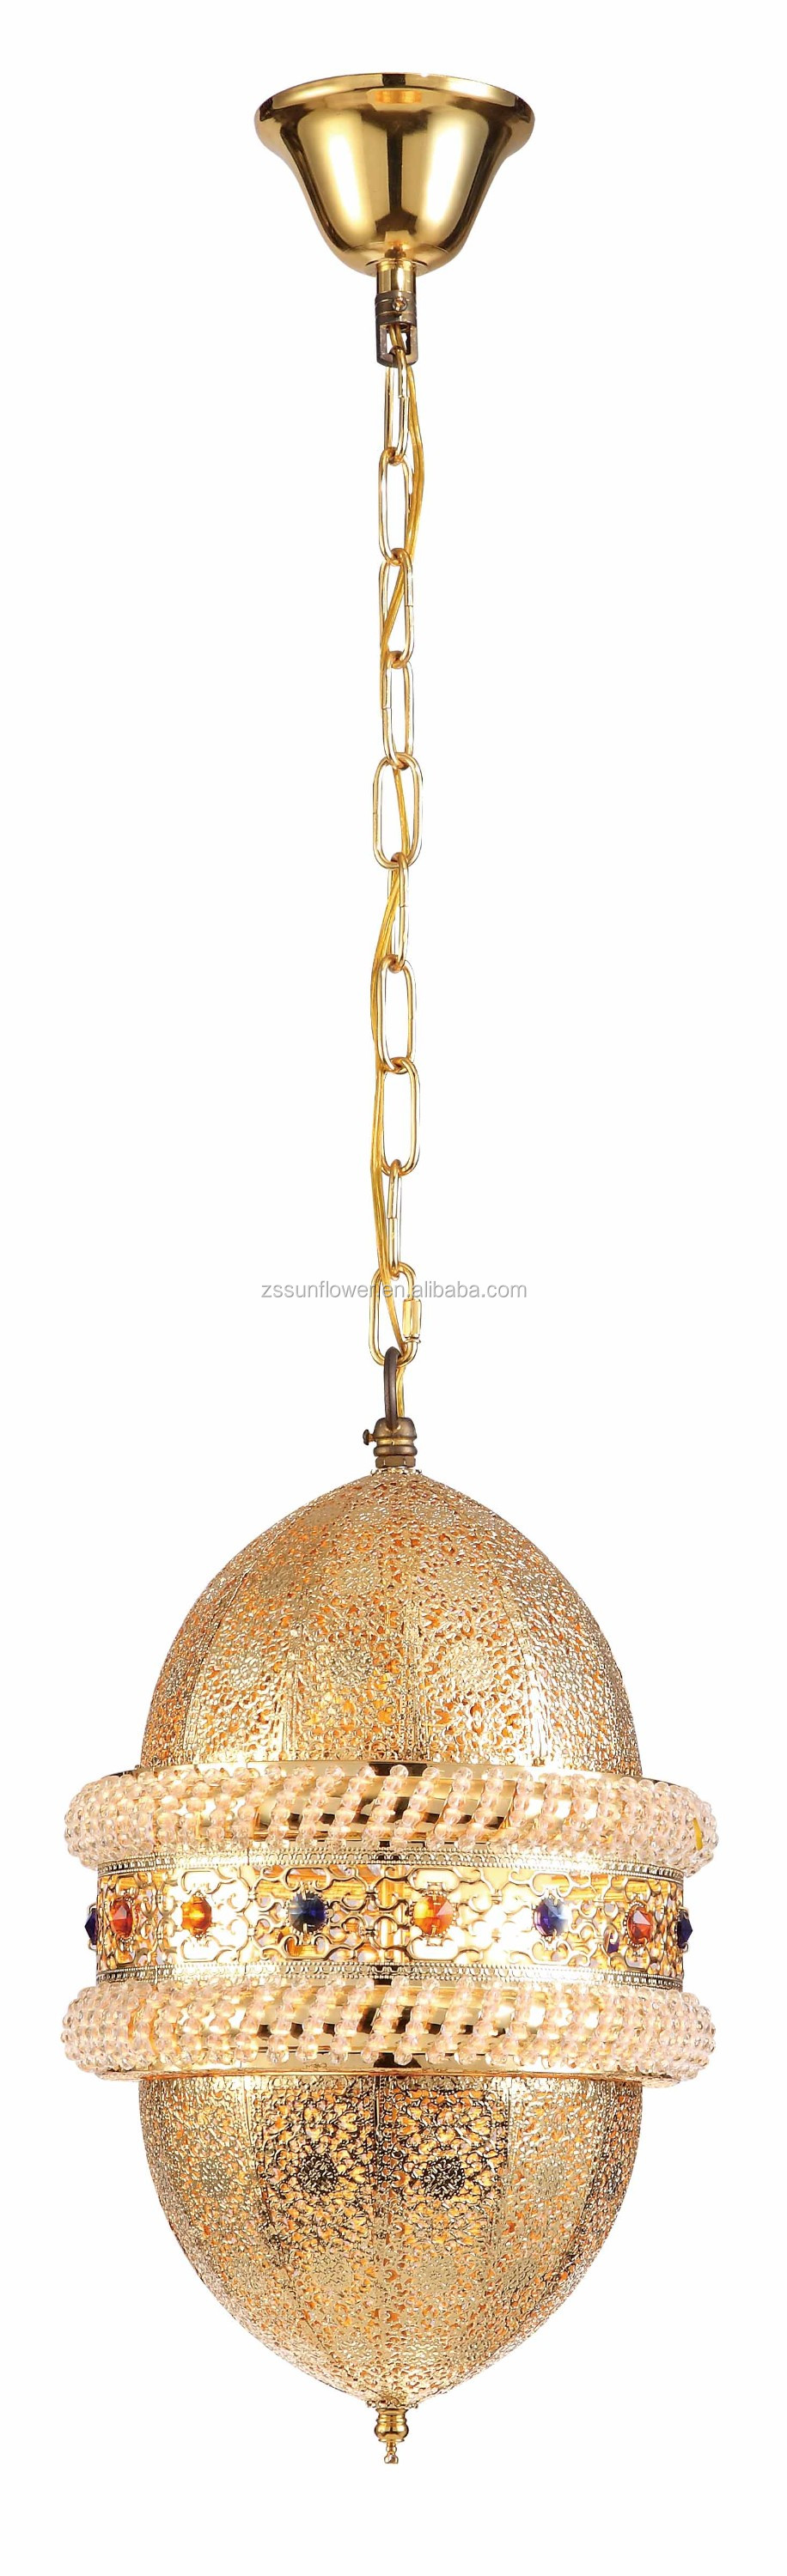 Arabic style metal ball pendant lamp for restaurant decoration